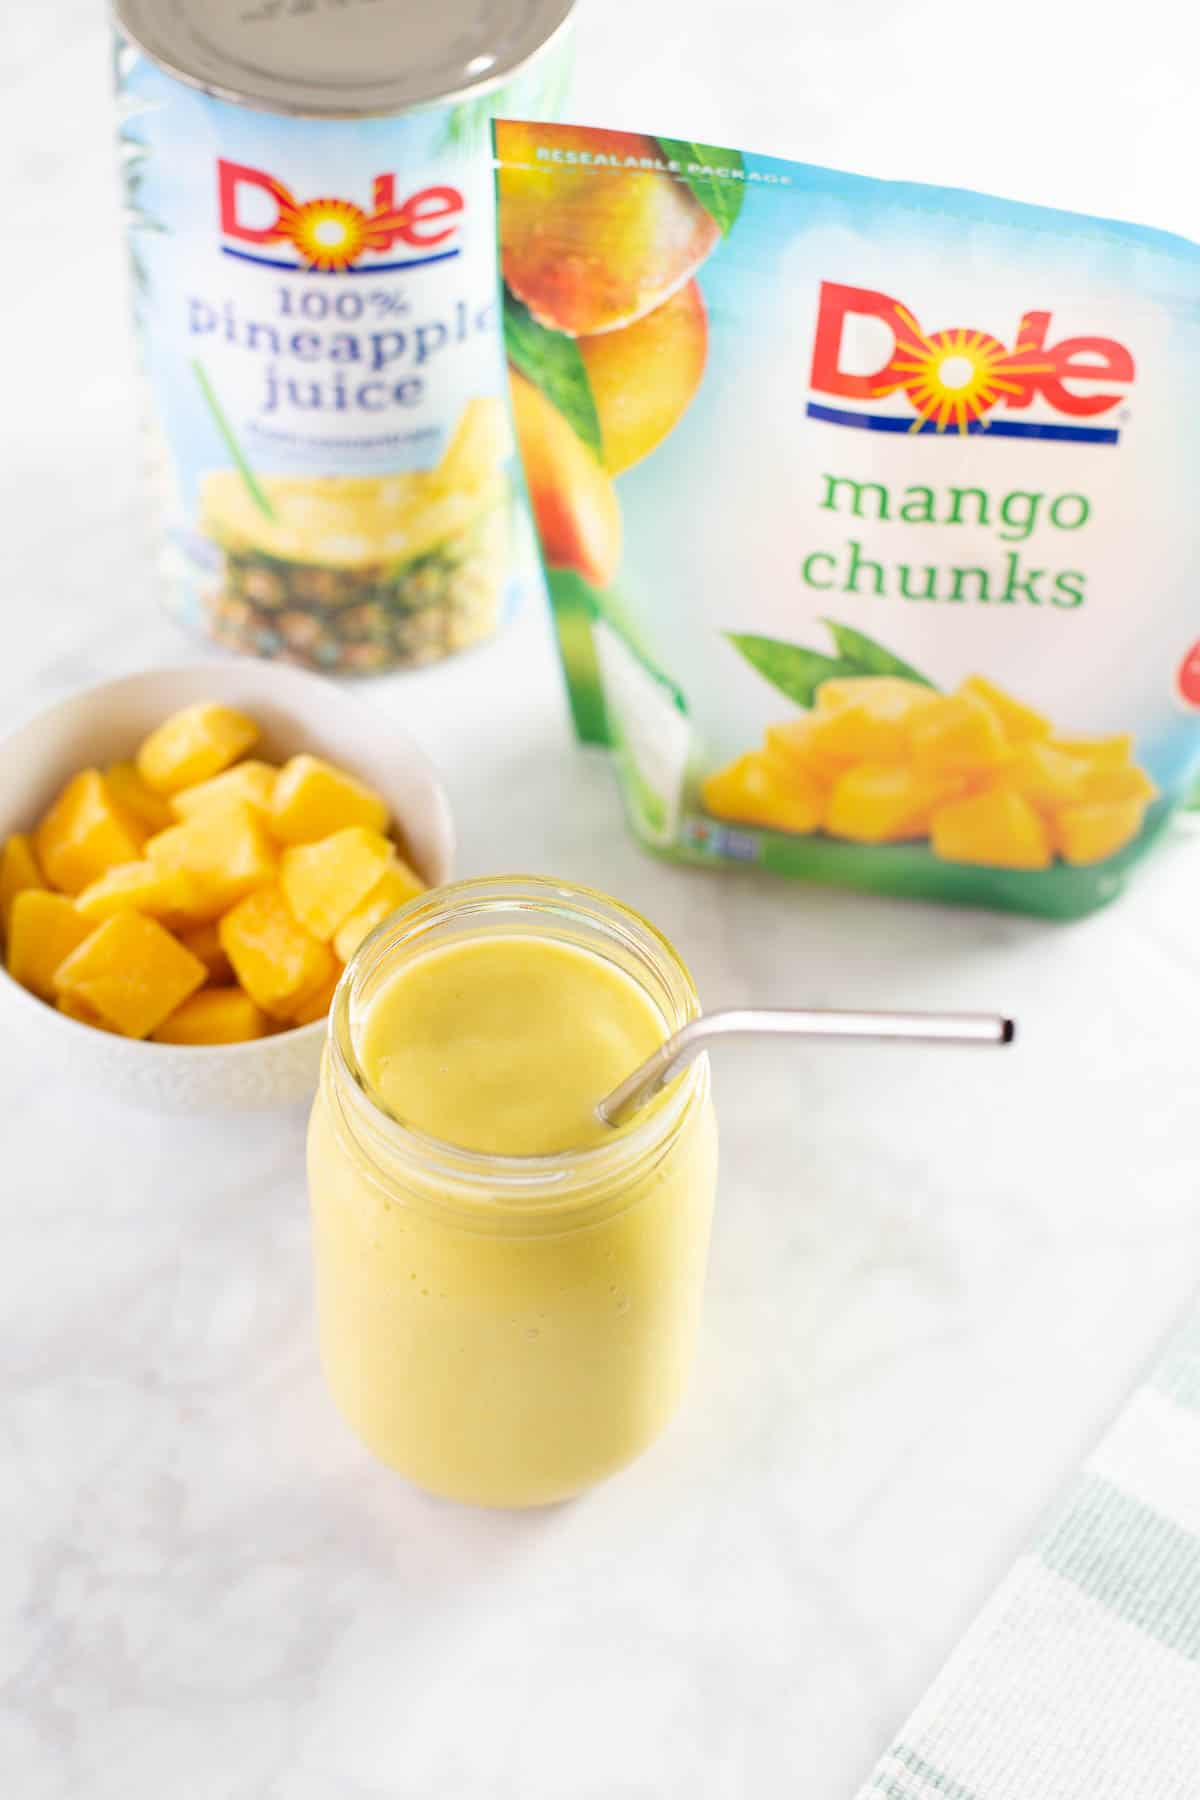 dole packaged ingredients used to make smoothie